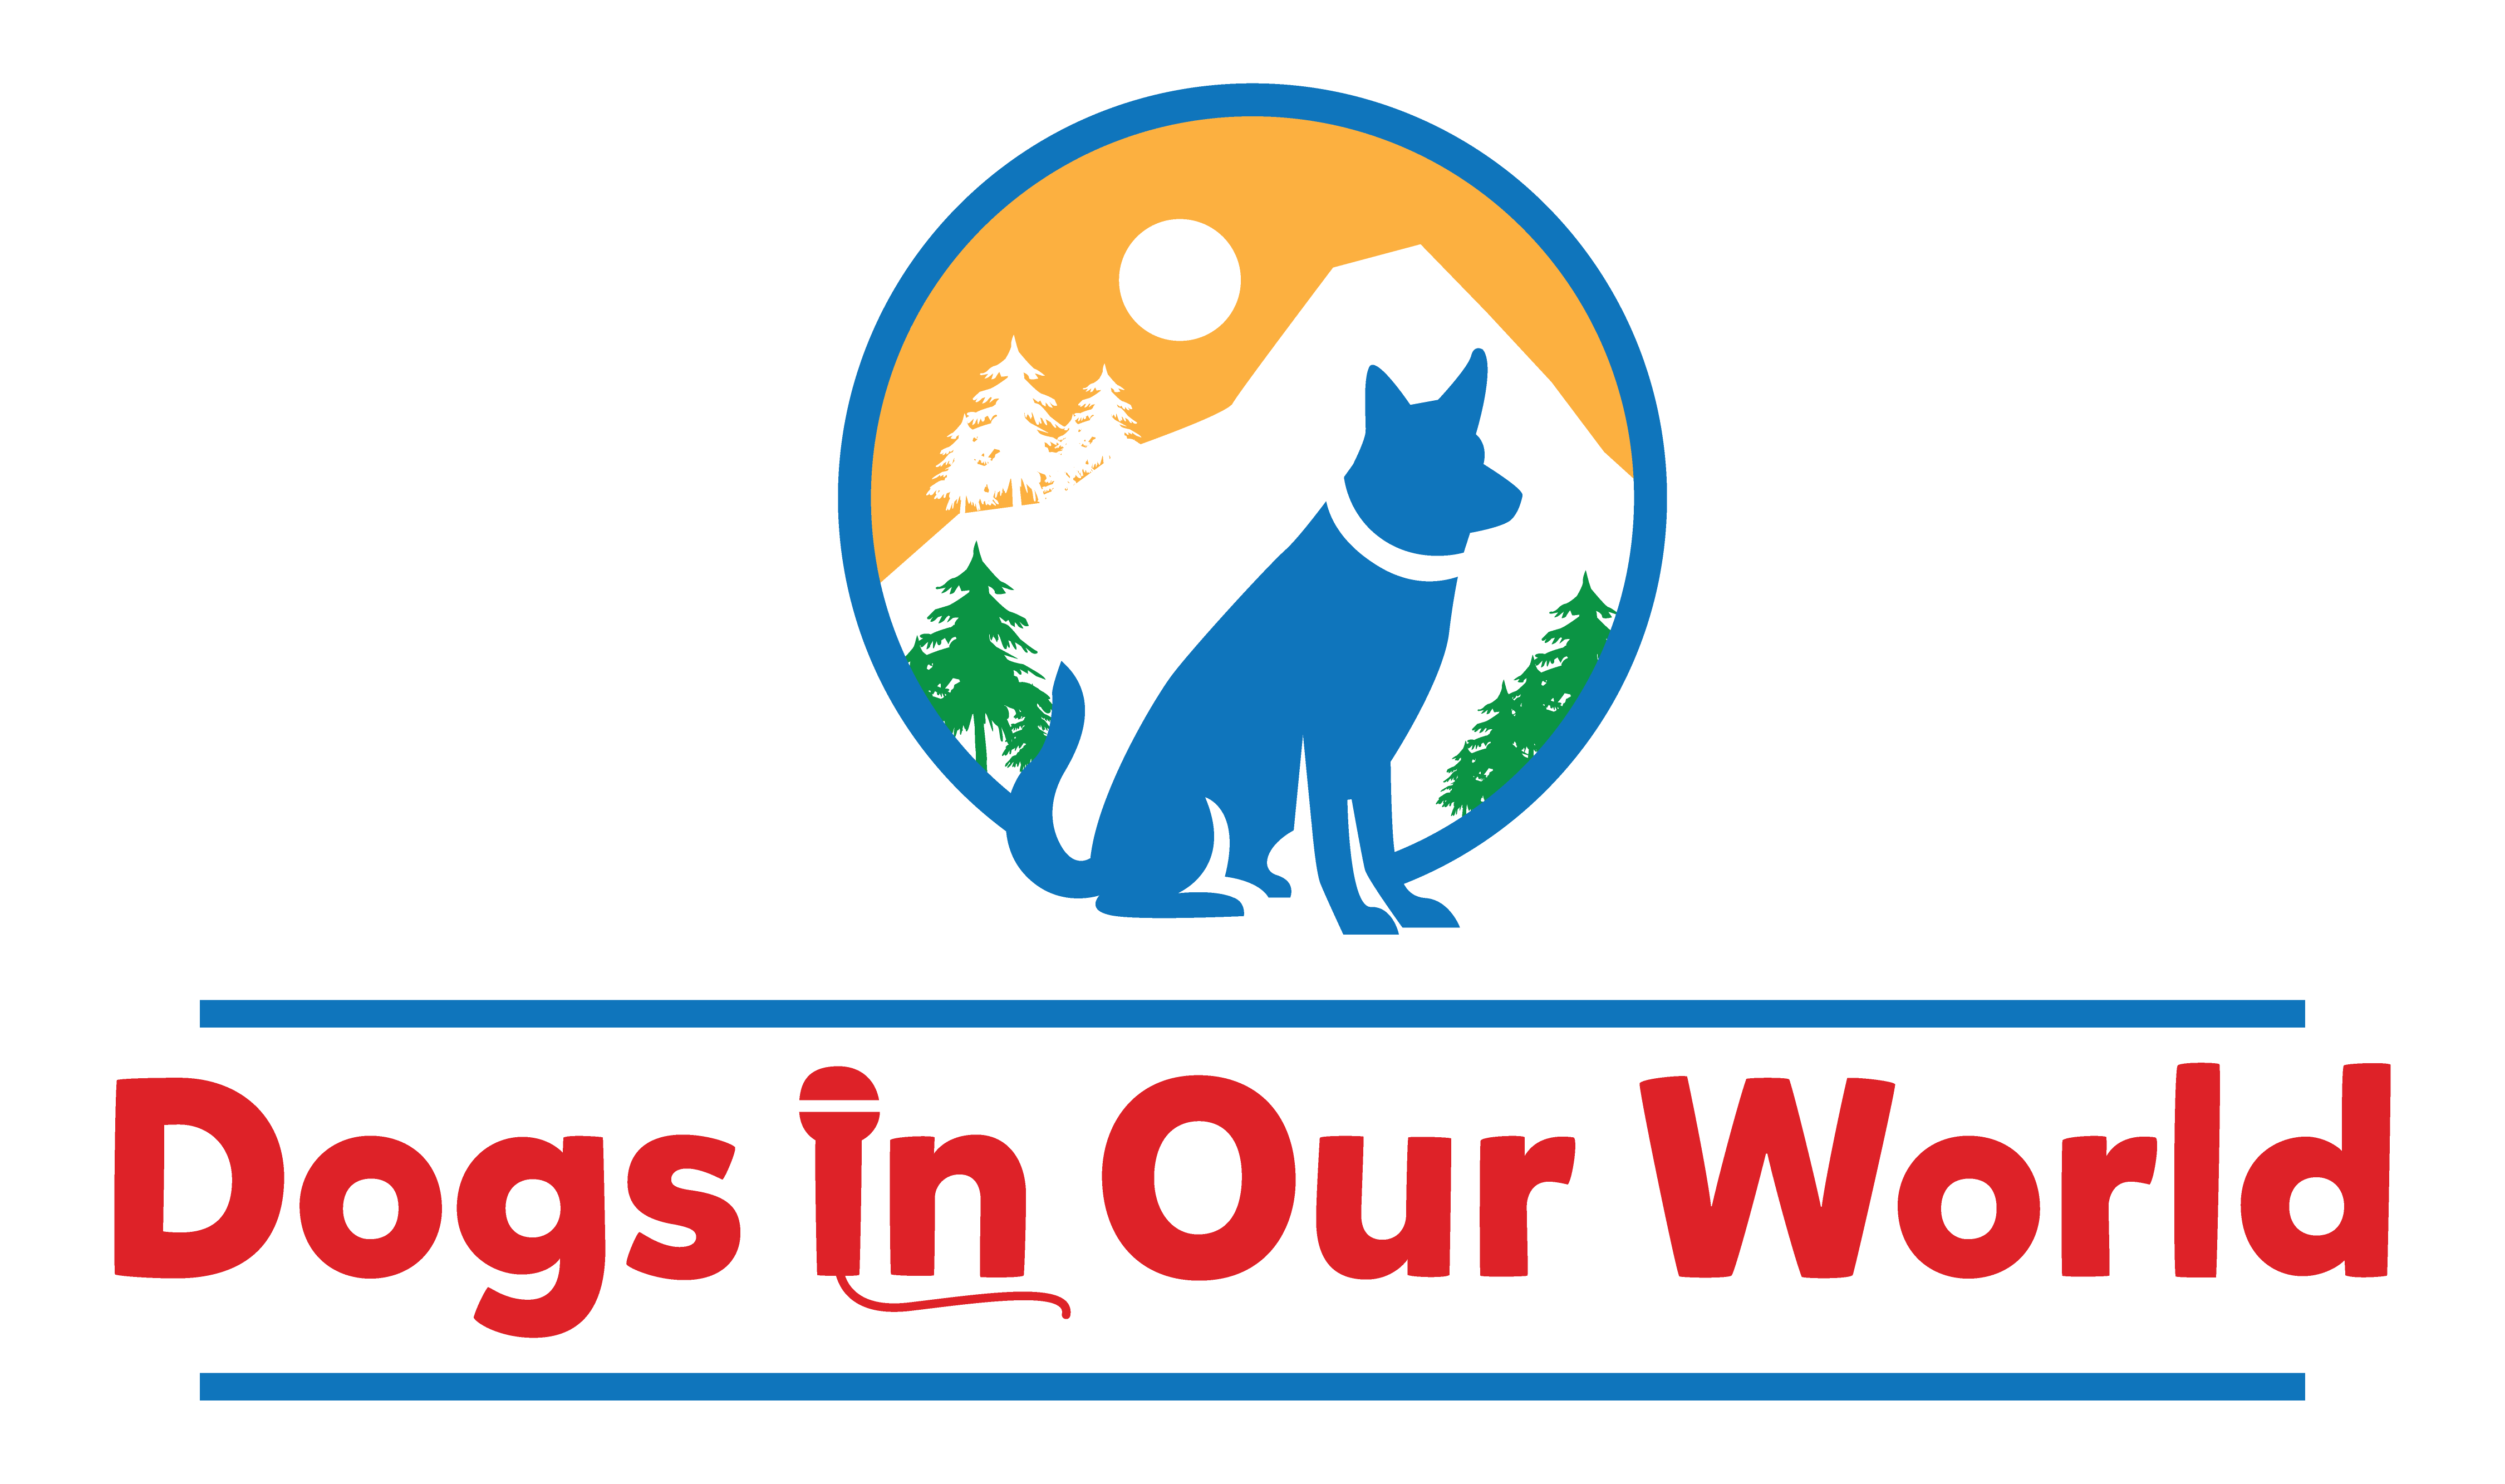 Dogs in Our World Family Dog Training and Boarding